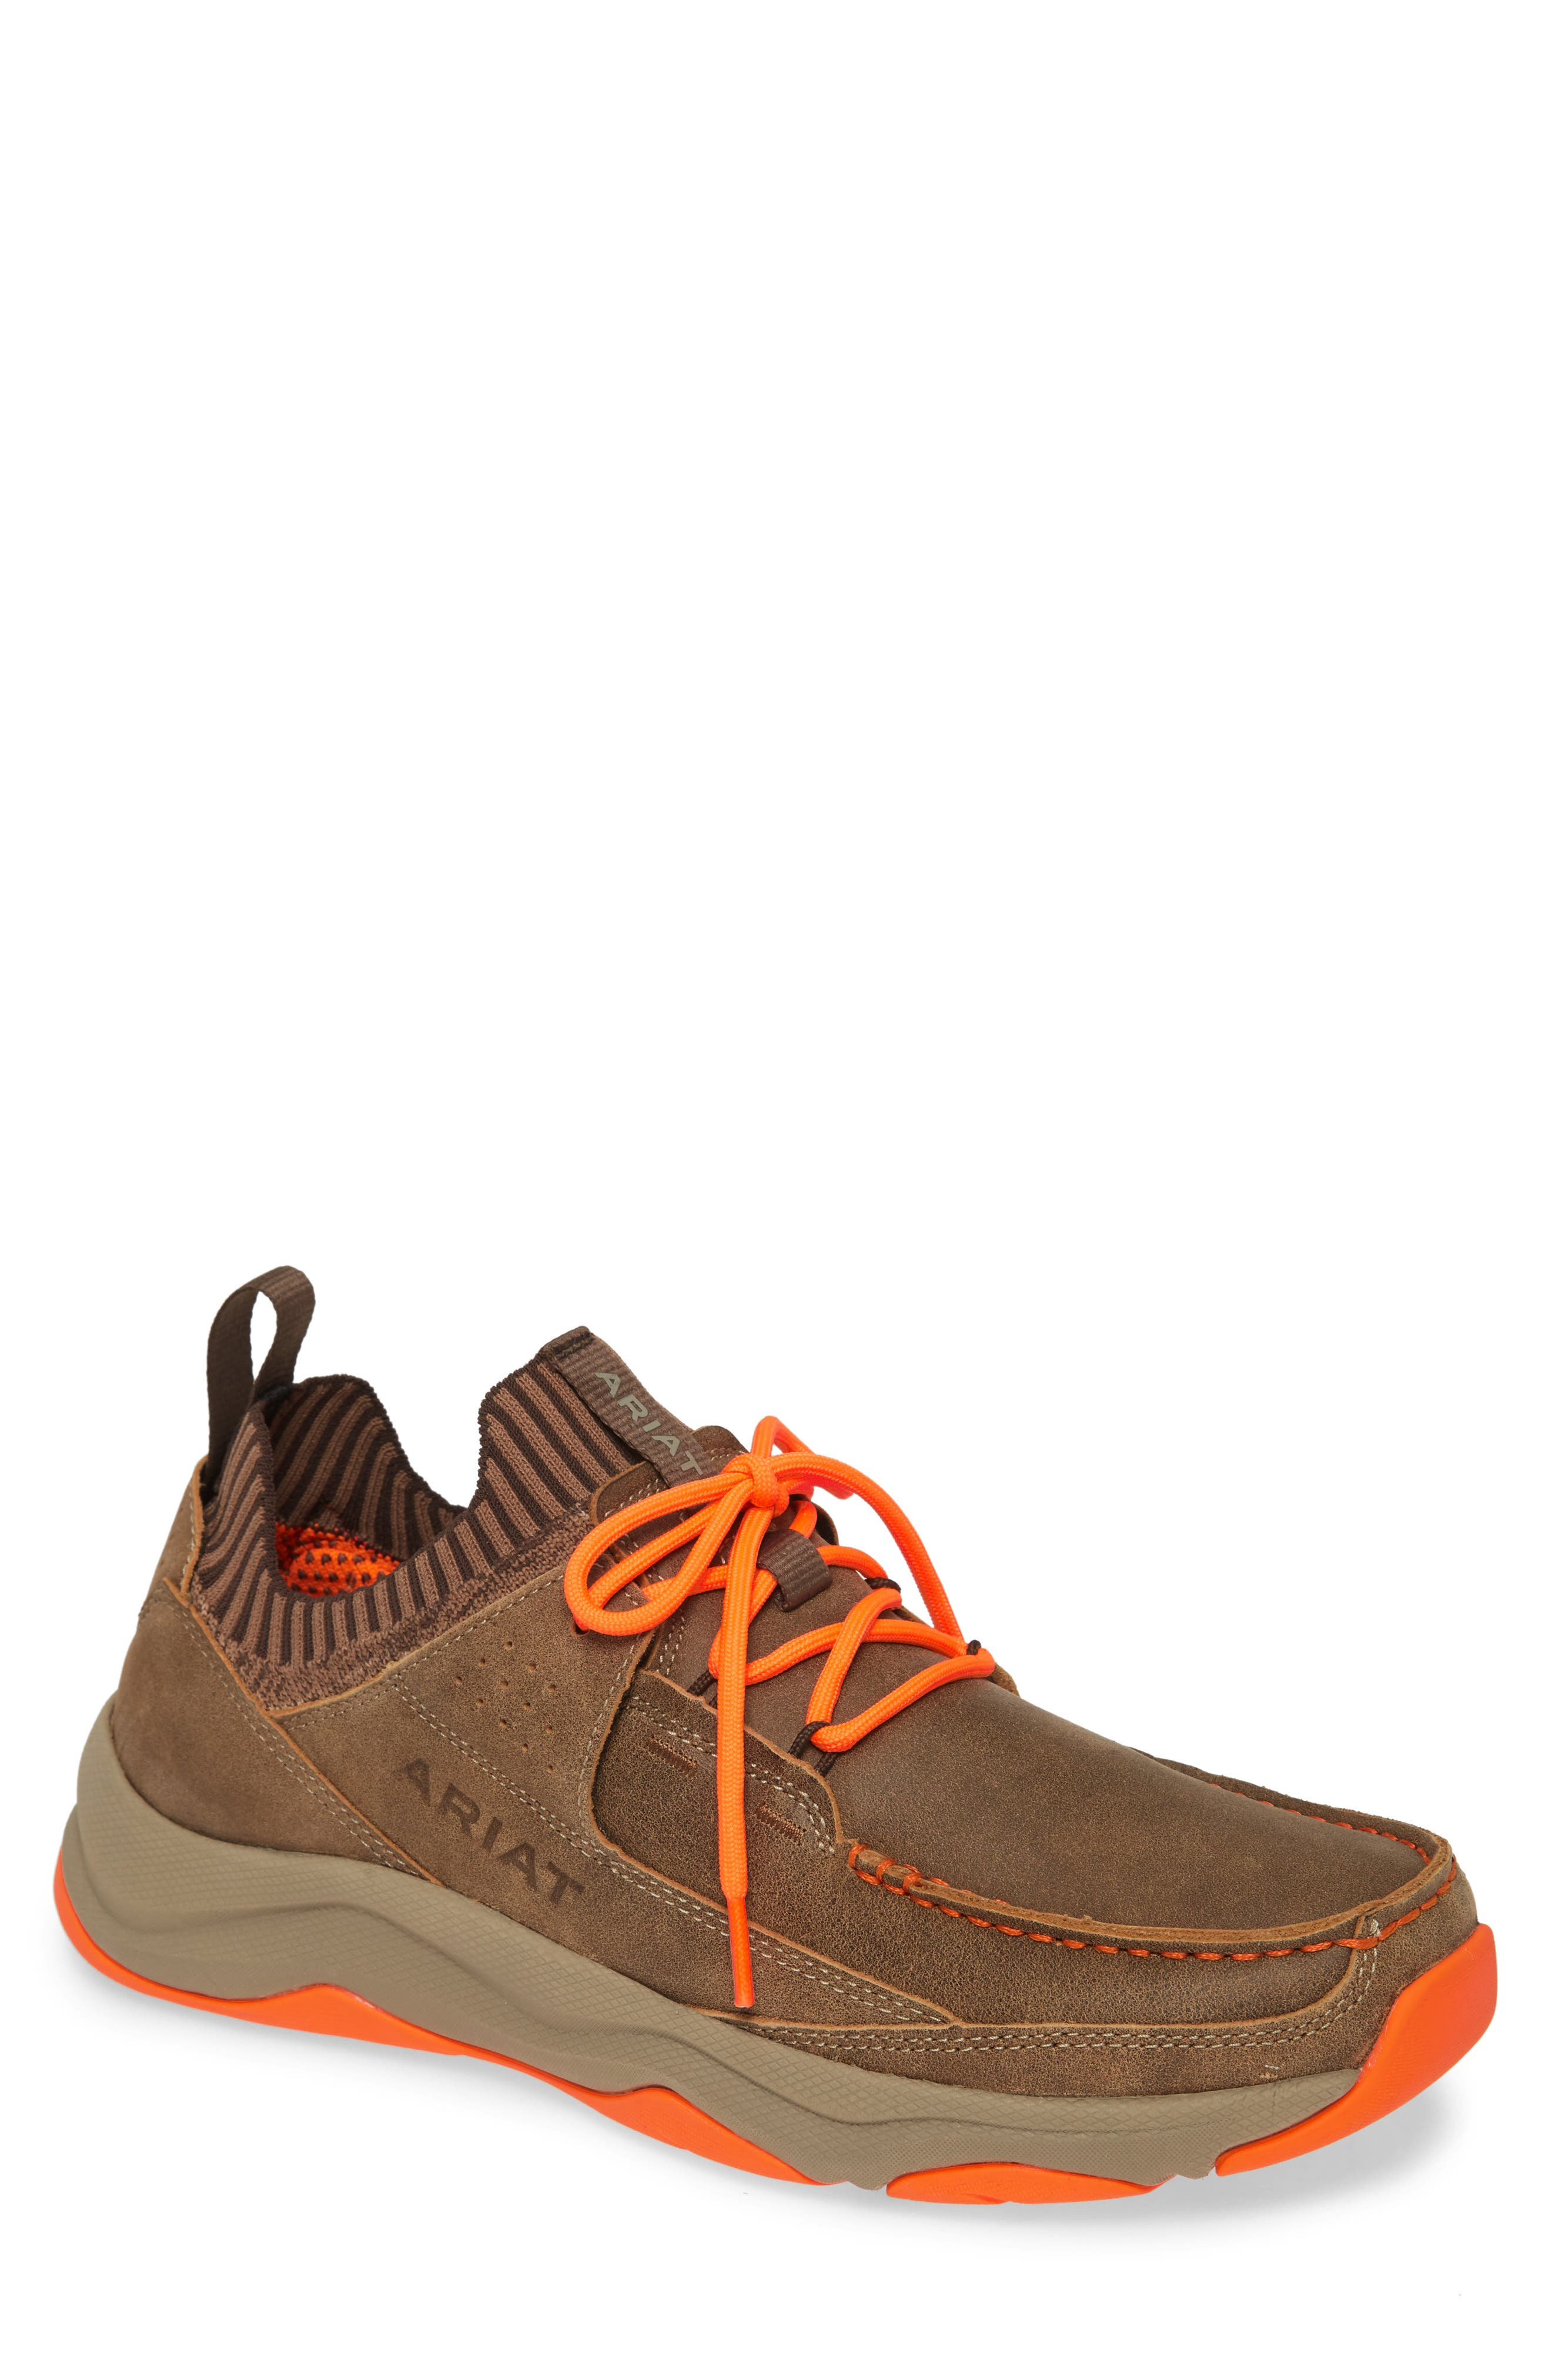 Country Mile Sneaker